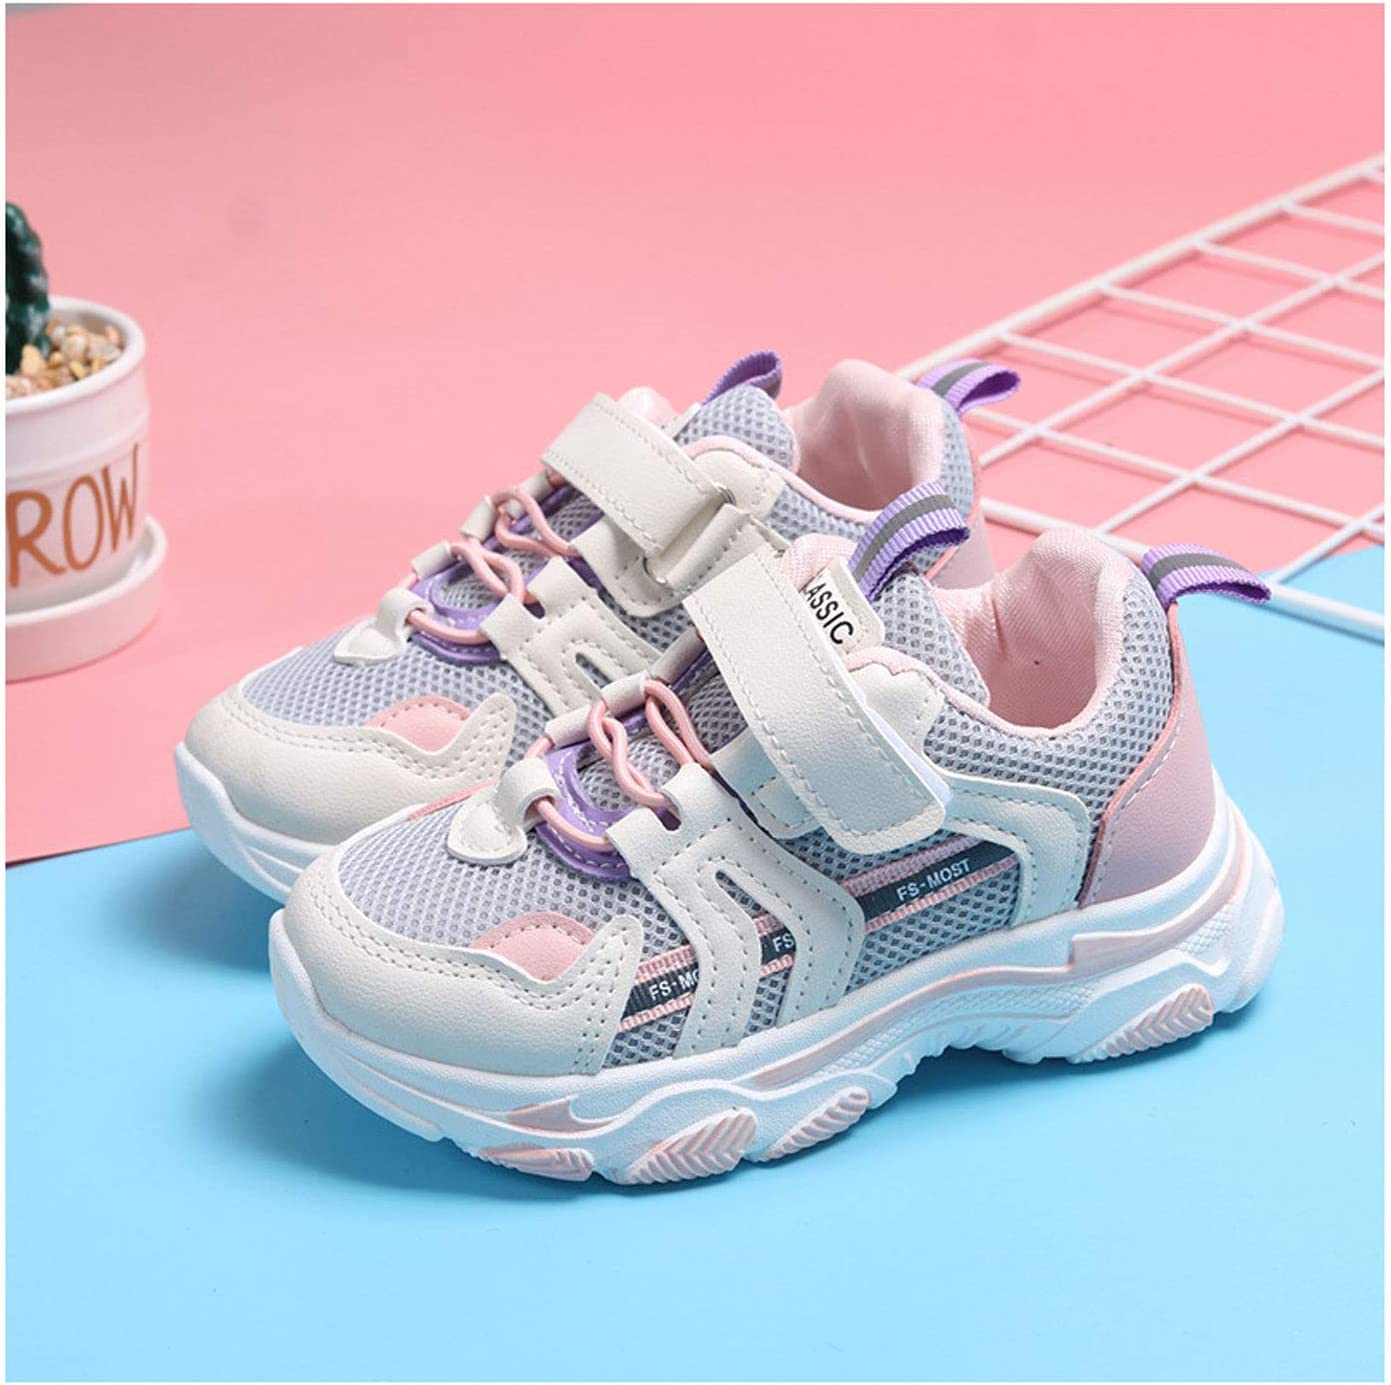 2018 New Spring Women Shoes for Woman Casual Shoes Wild